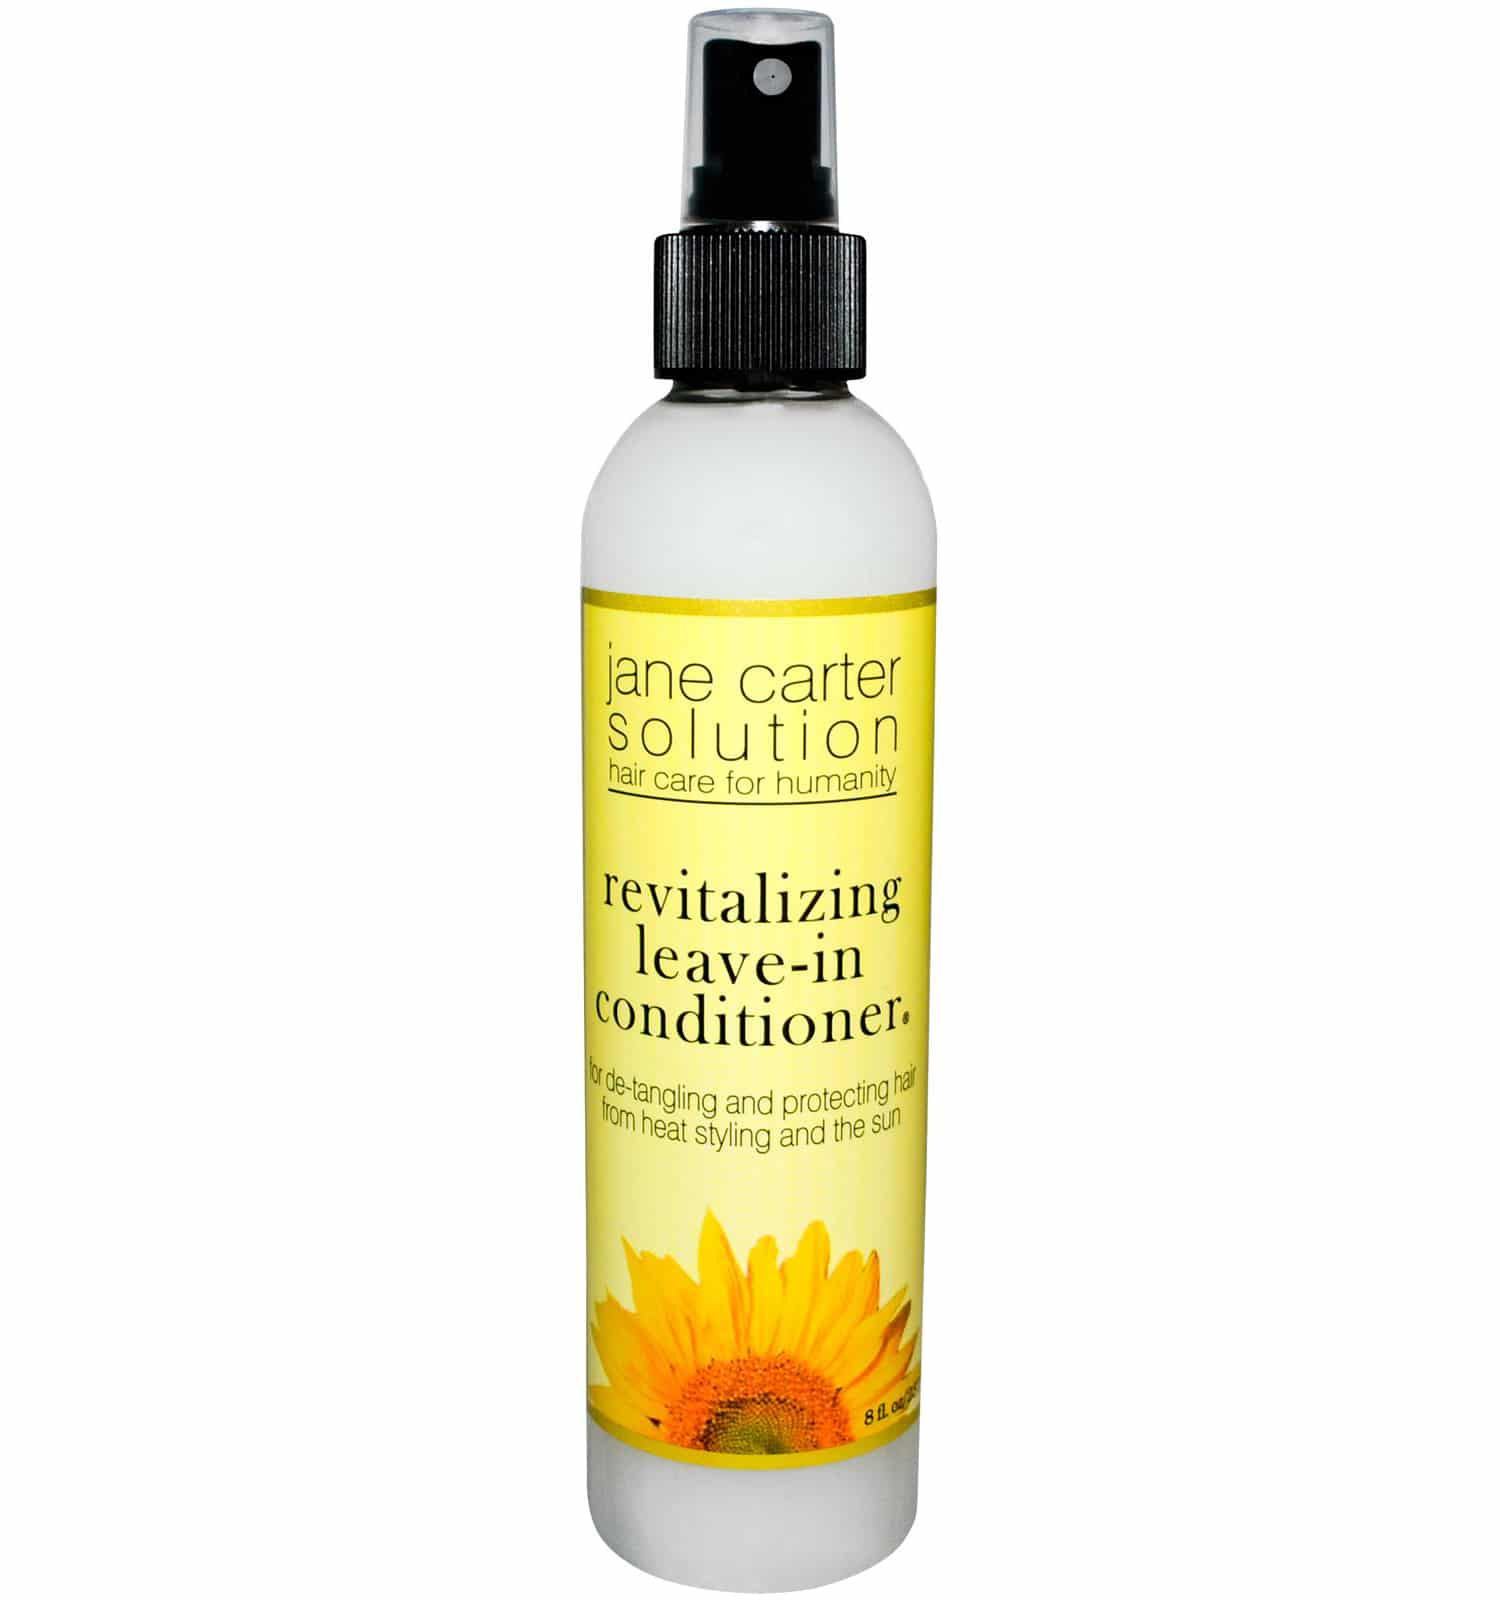 Jane Carter Revitalizing Leave in Conditioner 8oz